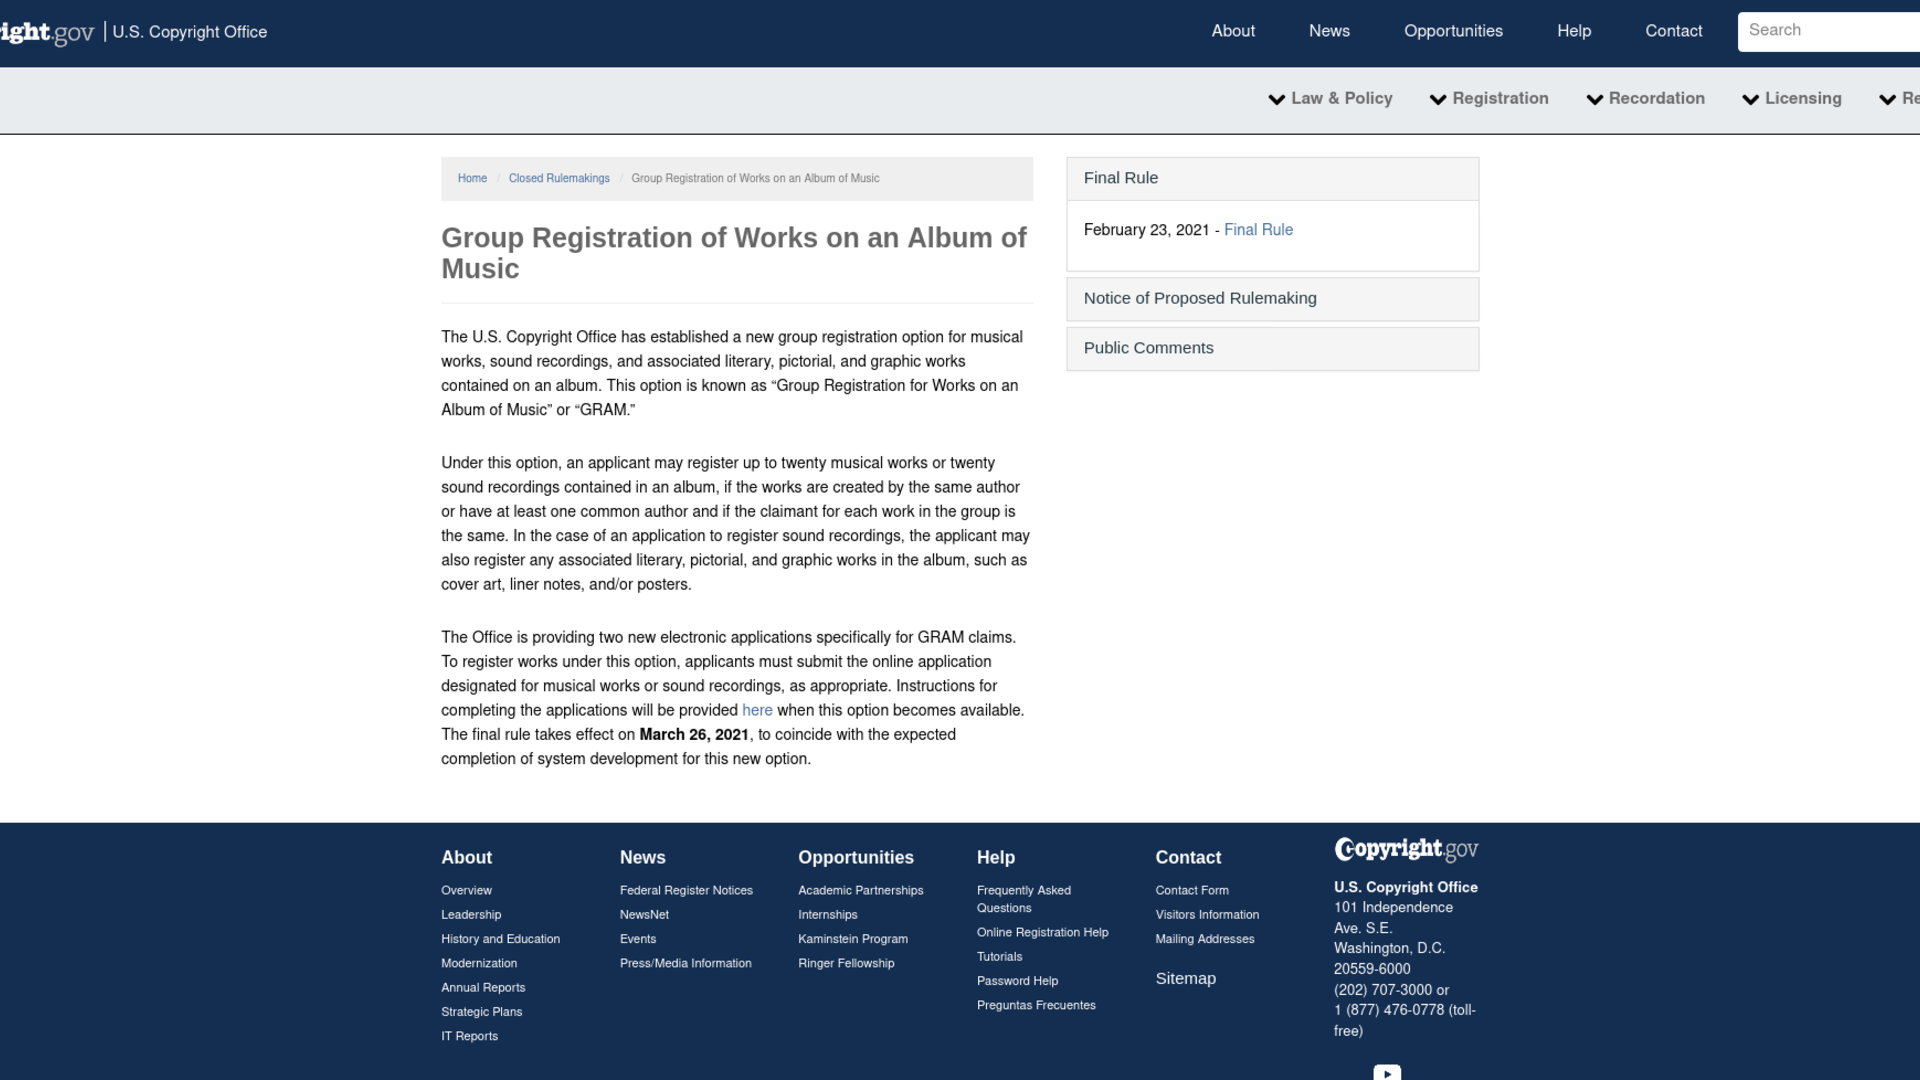 Fairness Rocks News Group Registration of Works on an Album of Music